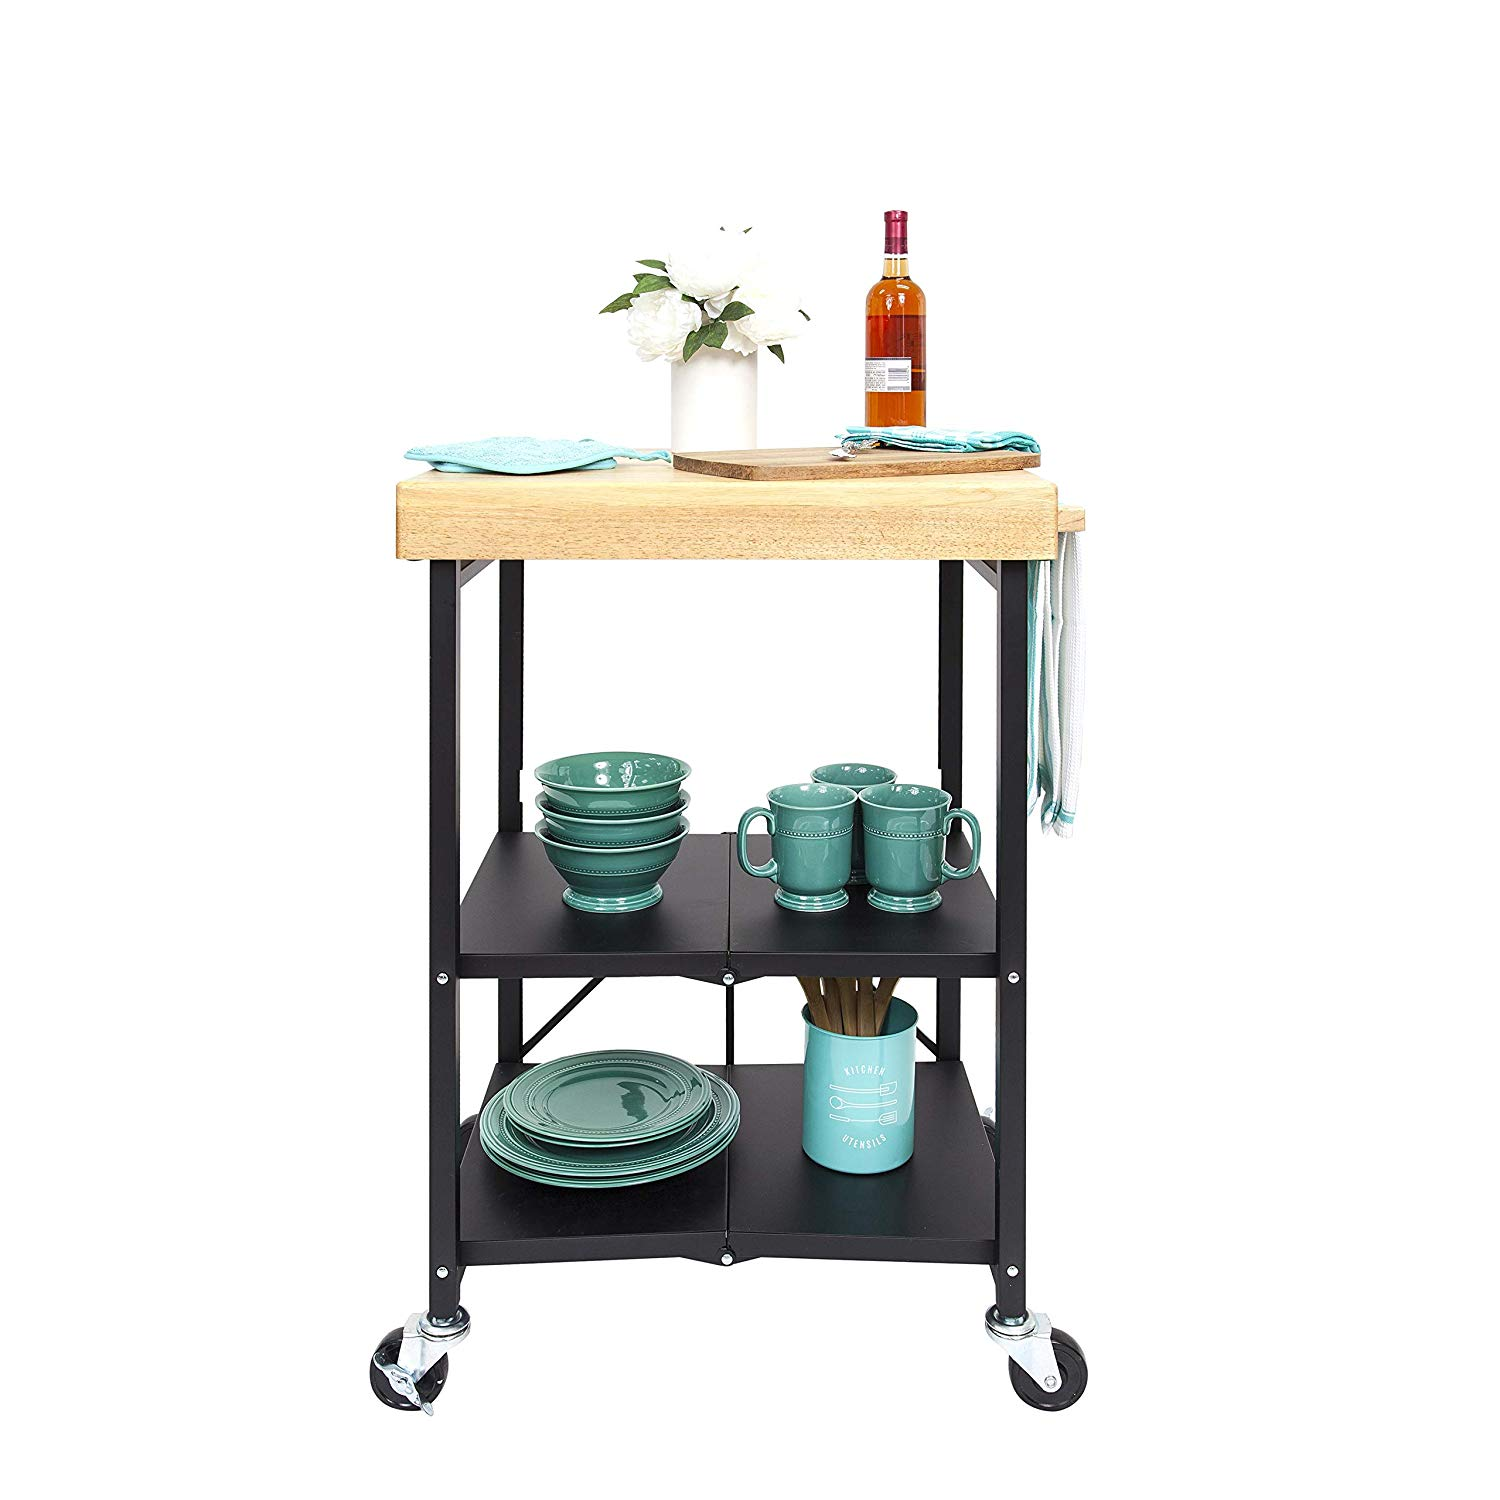 Origami foldable kitchen island storage cart